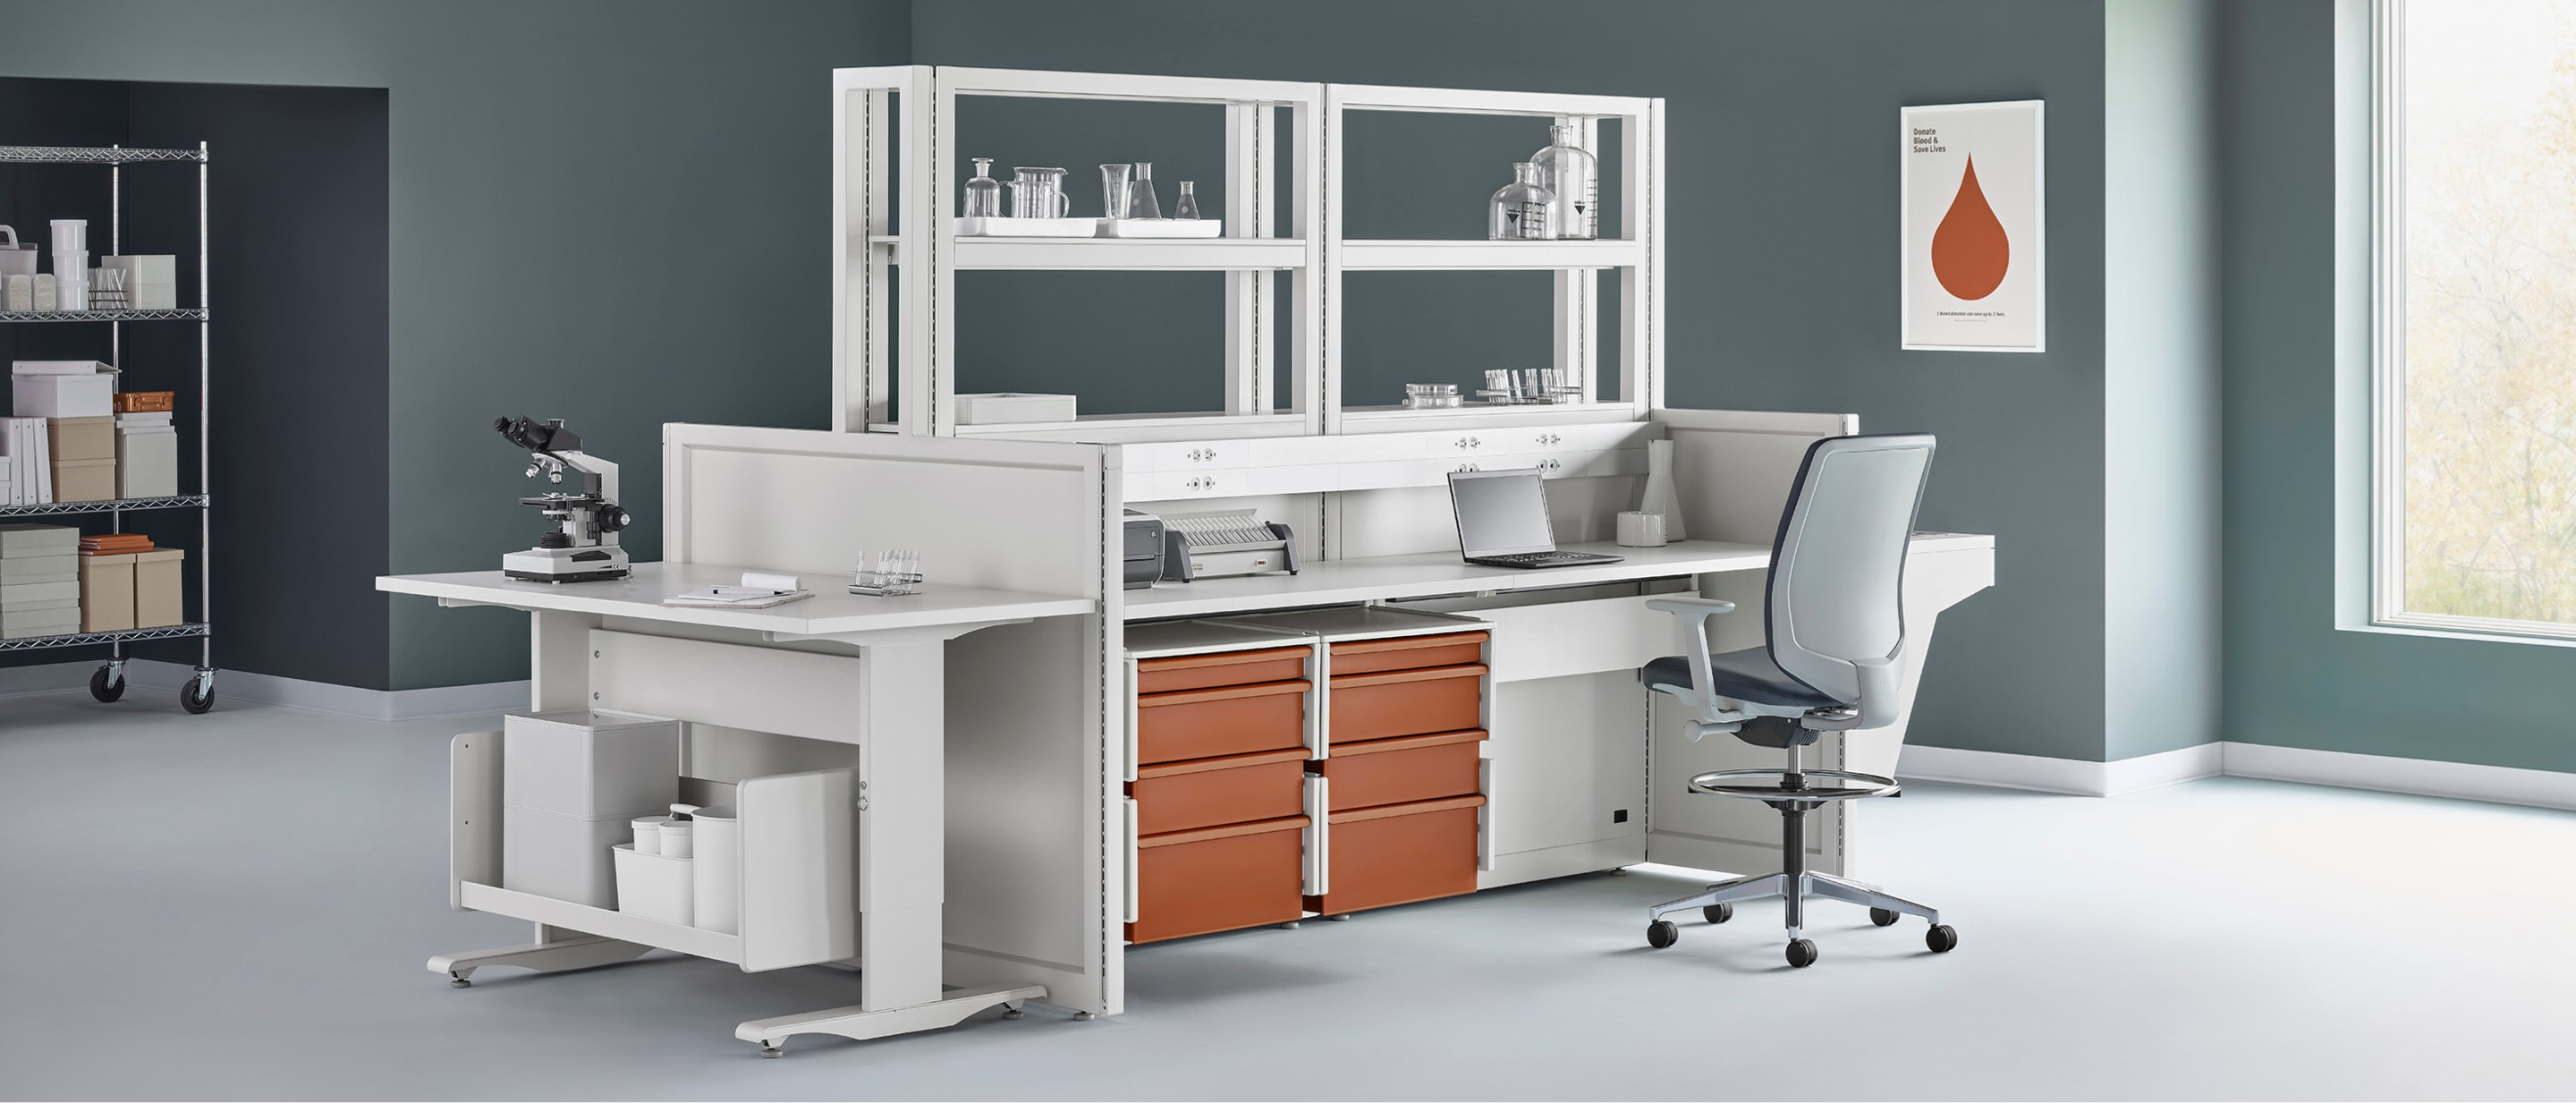 A lab setting with a Co/Struc System workstation and shelving in the center with a Verus work stool.